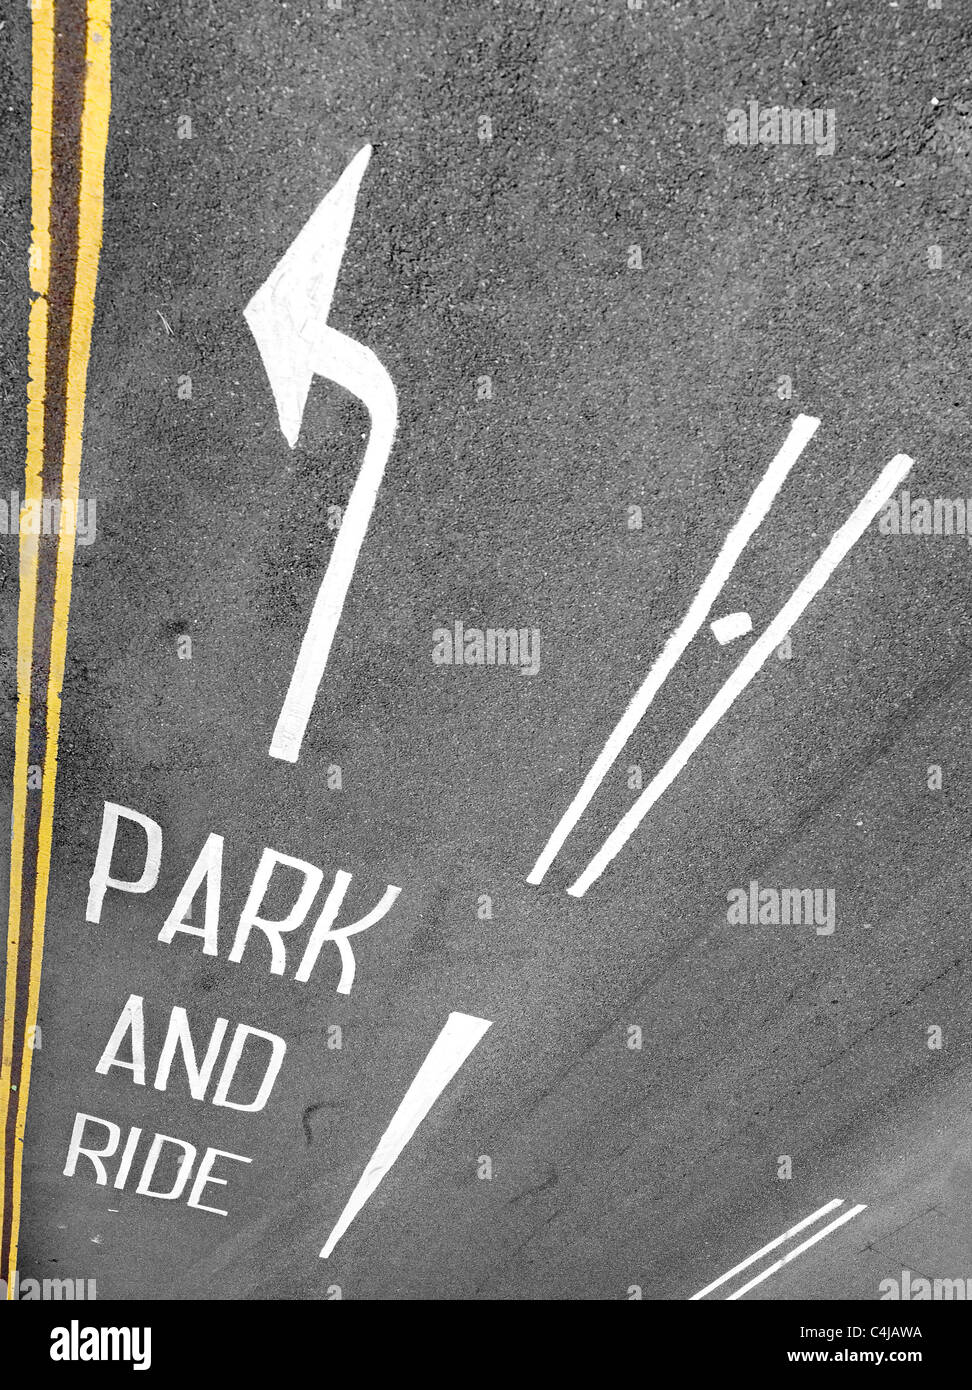 Park and Ride road marking and arrow with double yellow lines viewed from above - Stock Image